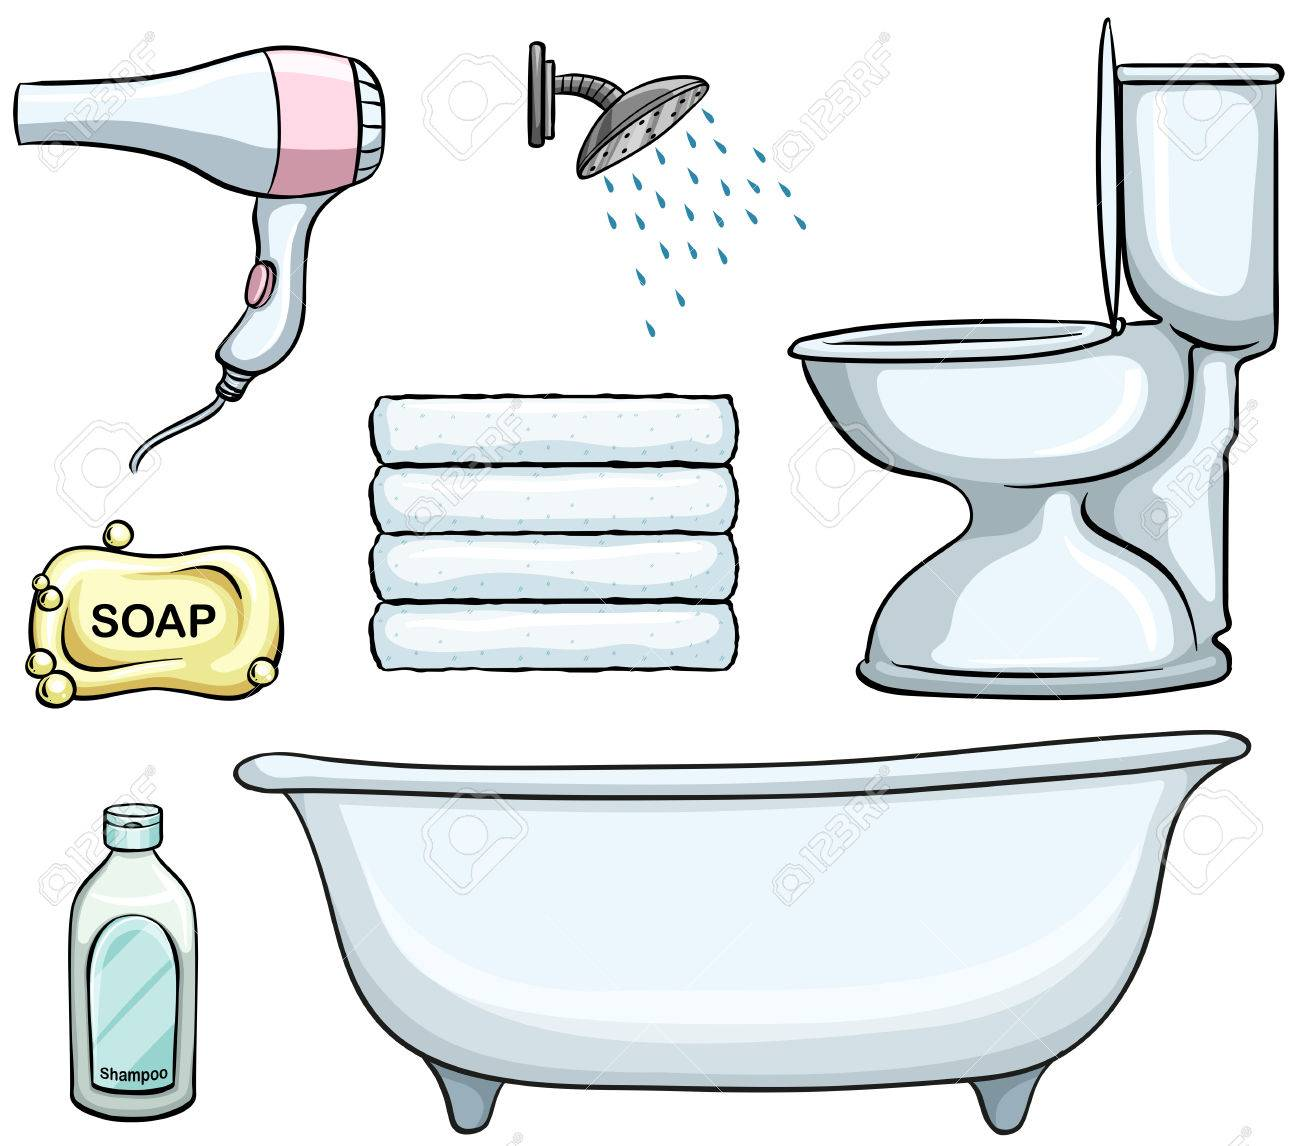 Different Types Of Bathroom Objects Royalty Free Cliparts Vectors